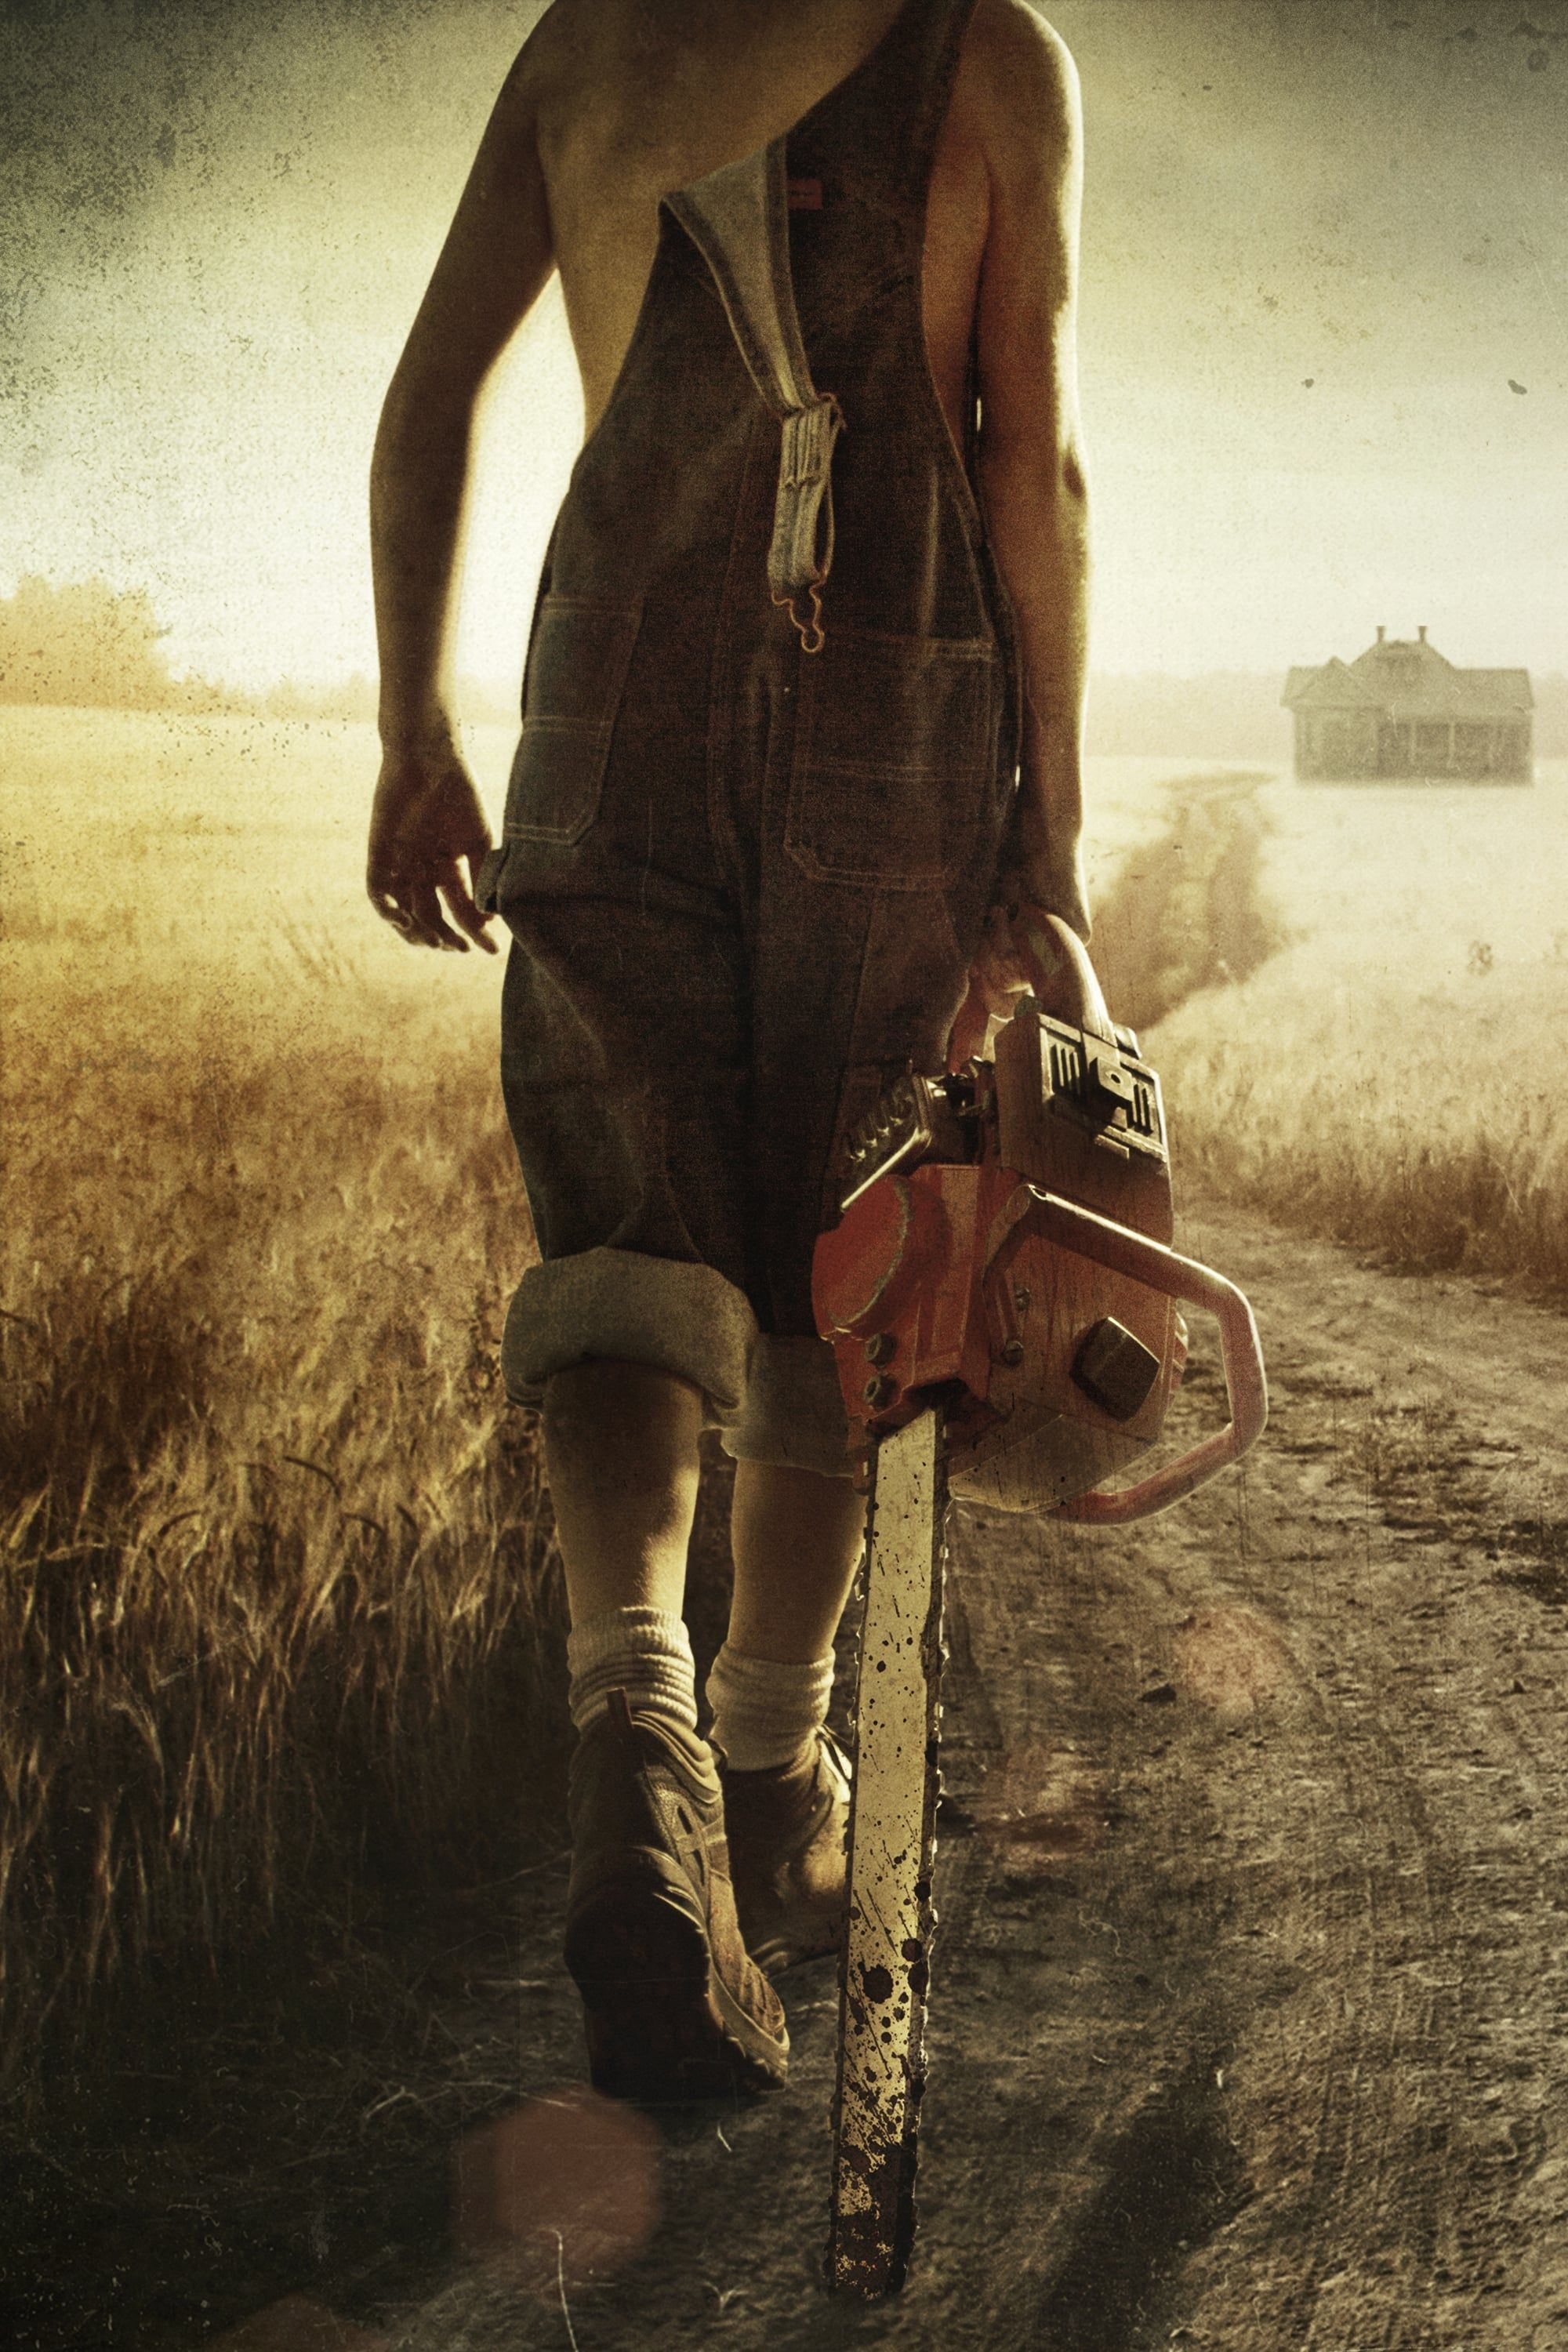 Watch Leatherface FULL MOVIE HD1080p Sub English